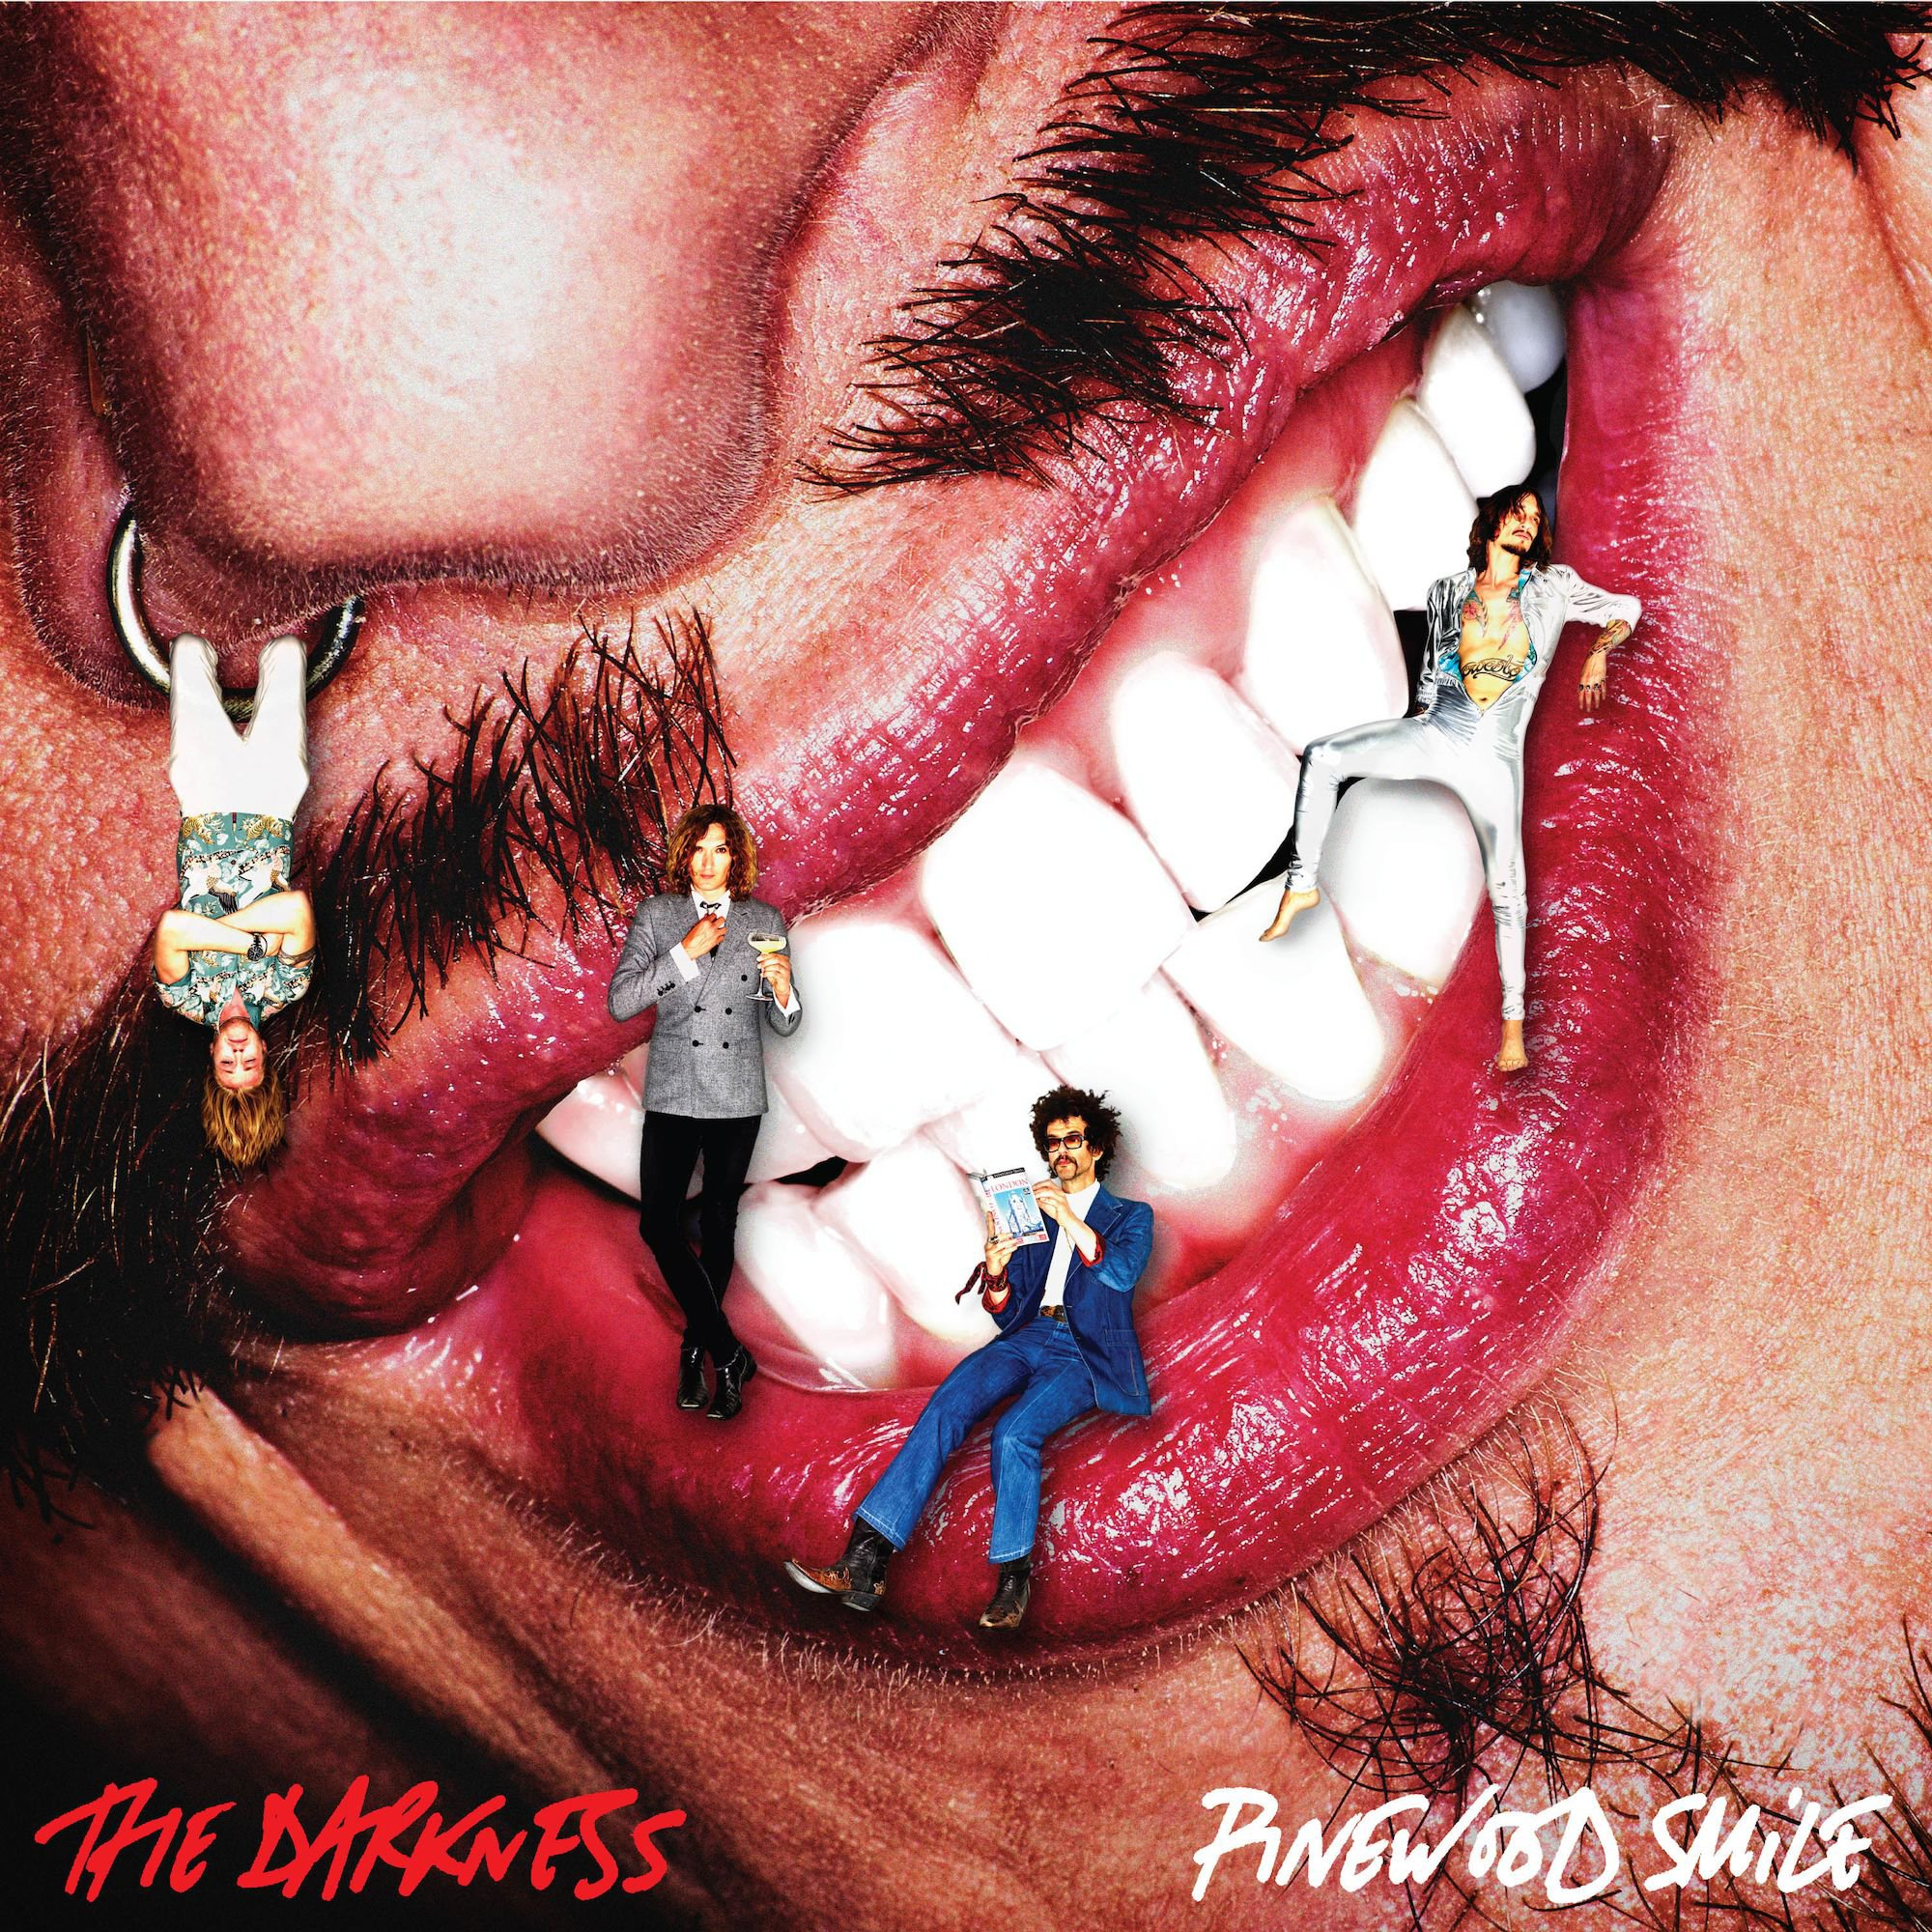 CD : The Darkness - Pinewood Smile (CD)